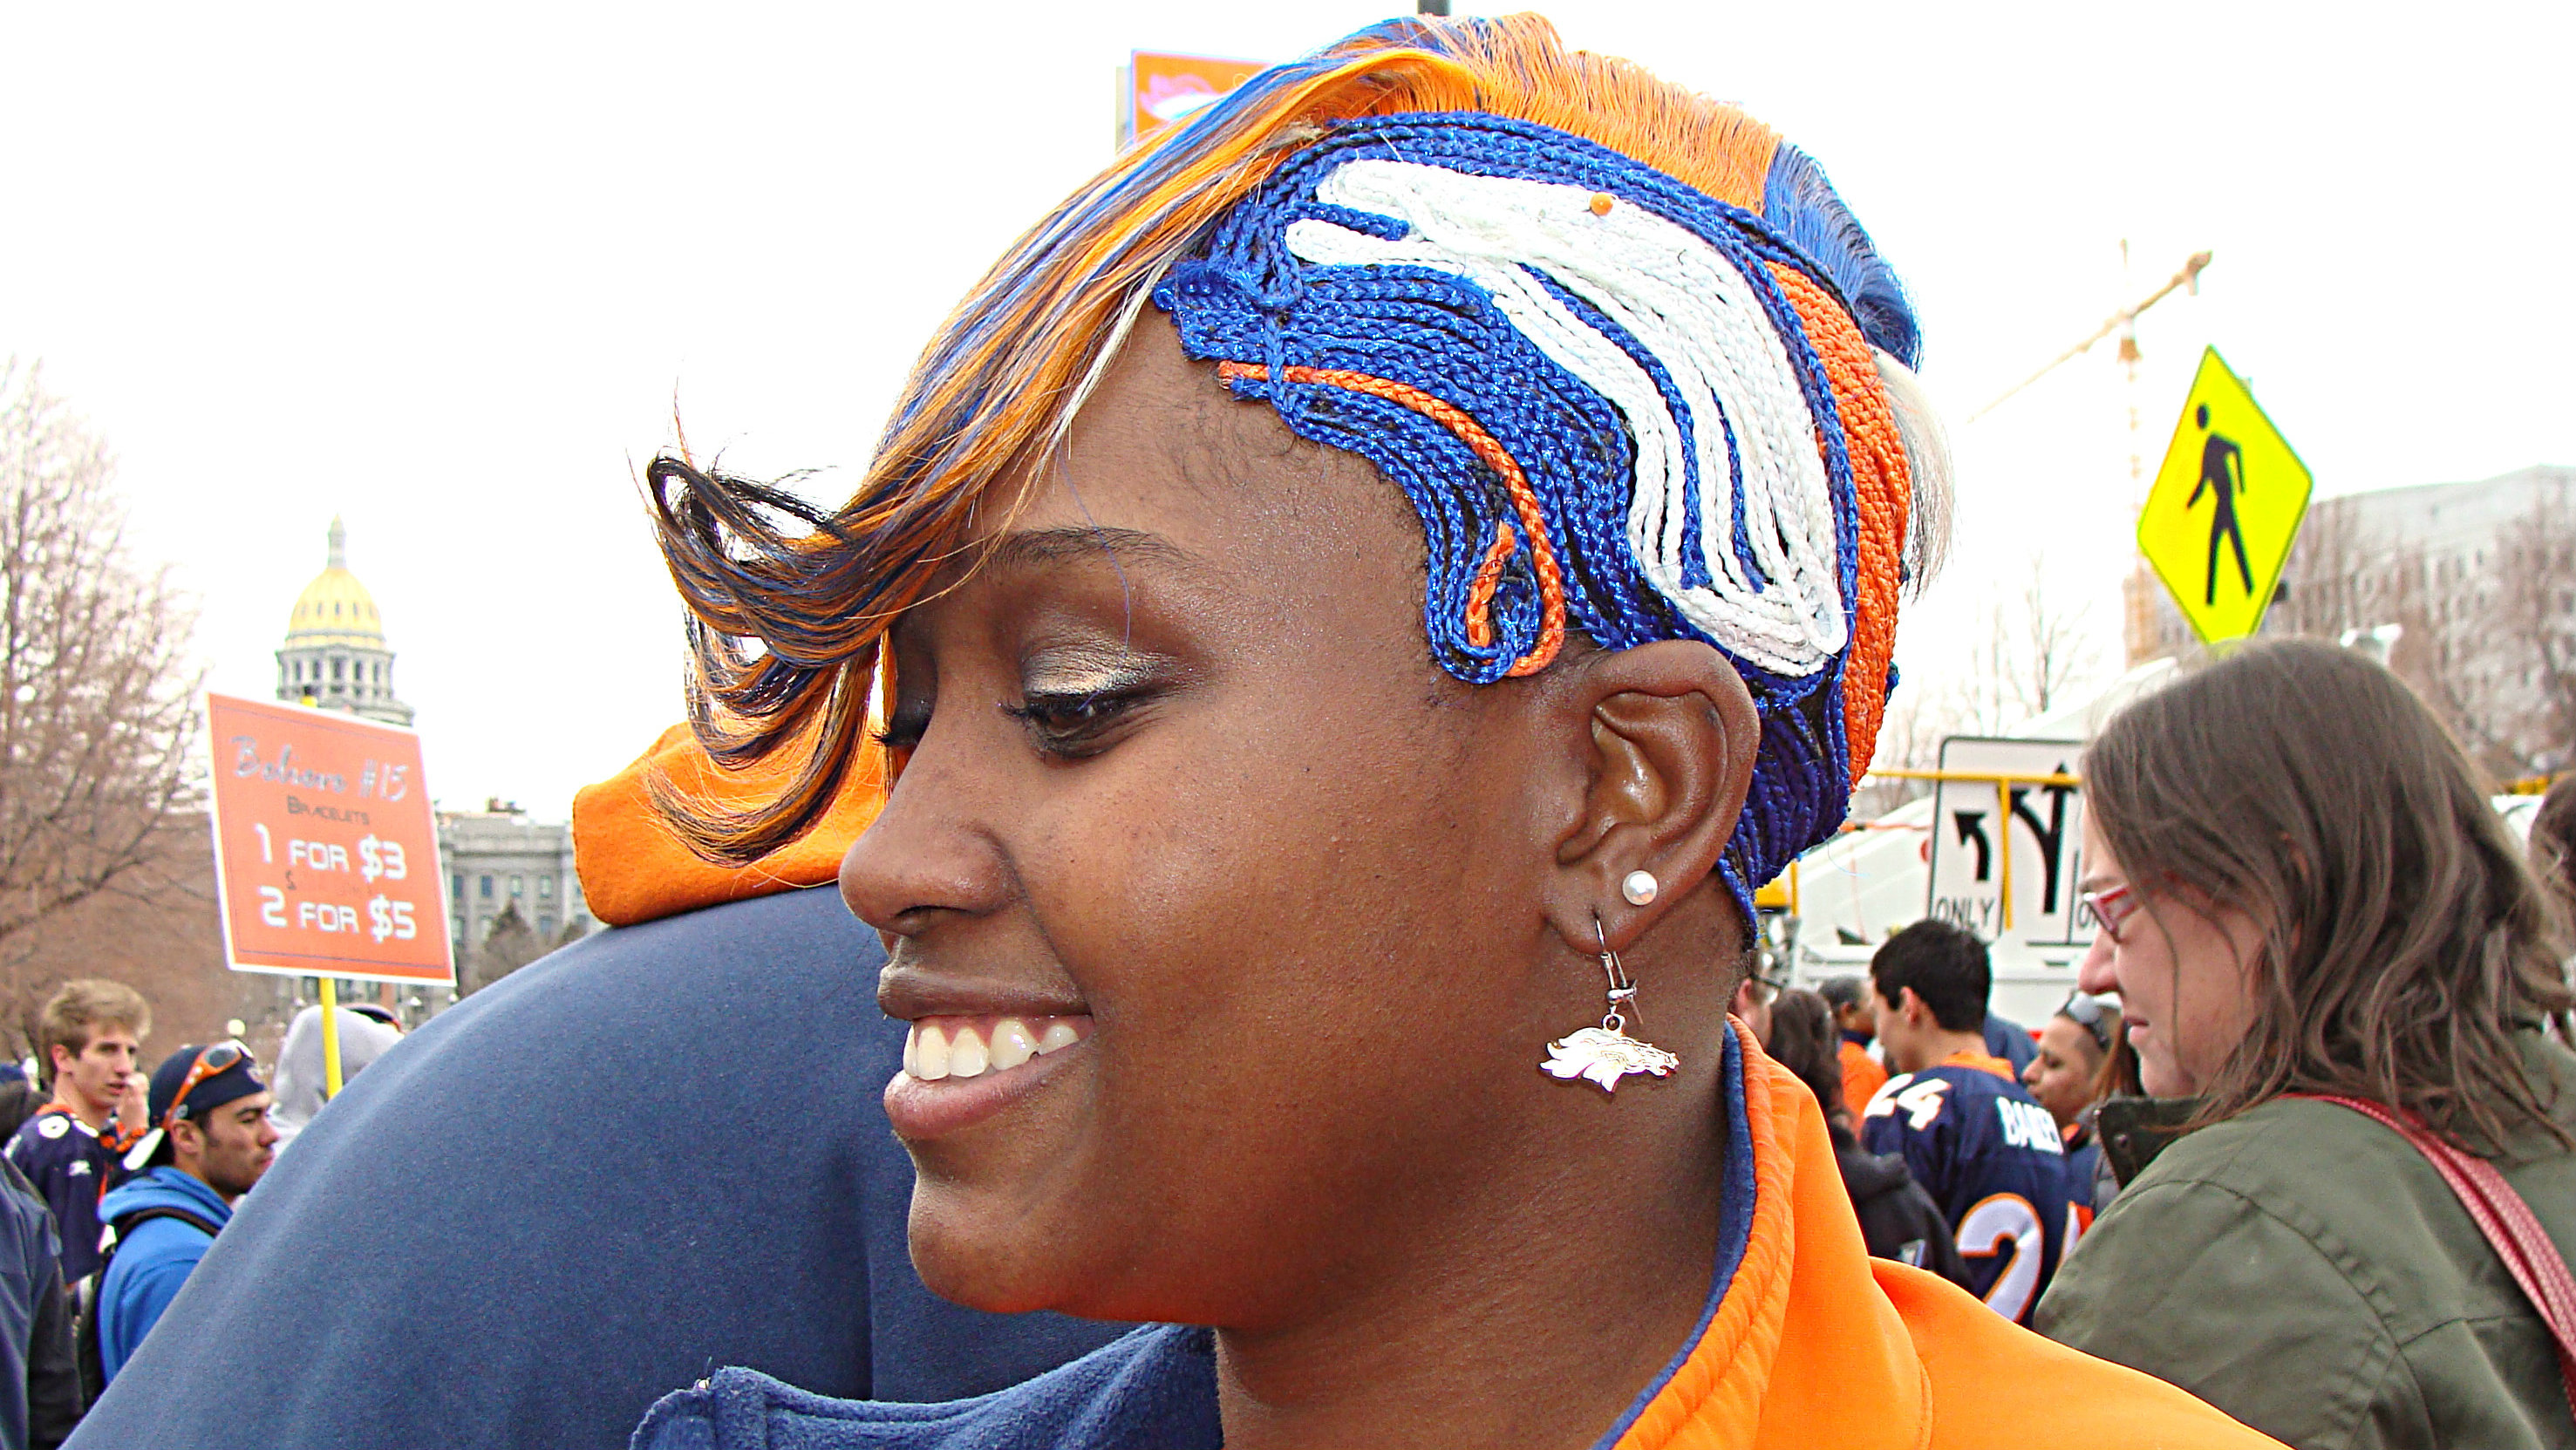 Photo: Broncos fan hairstyle